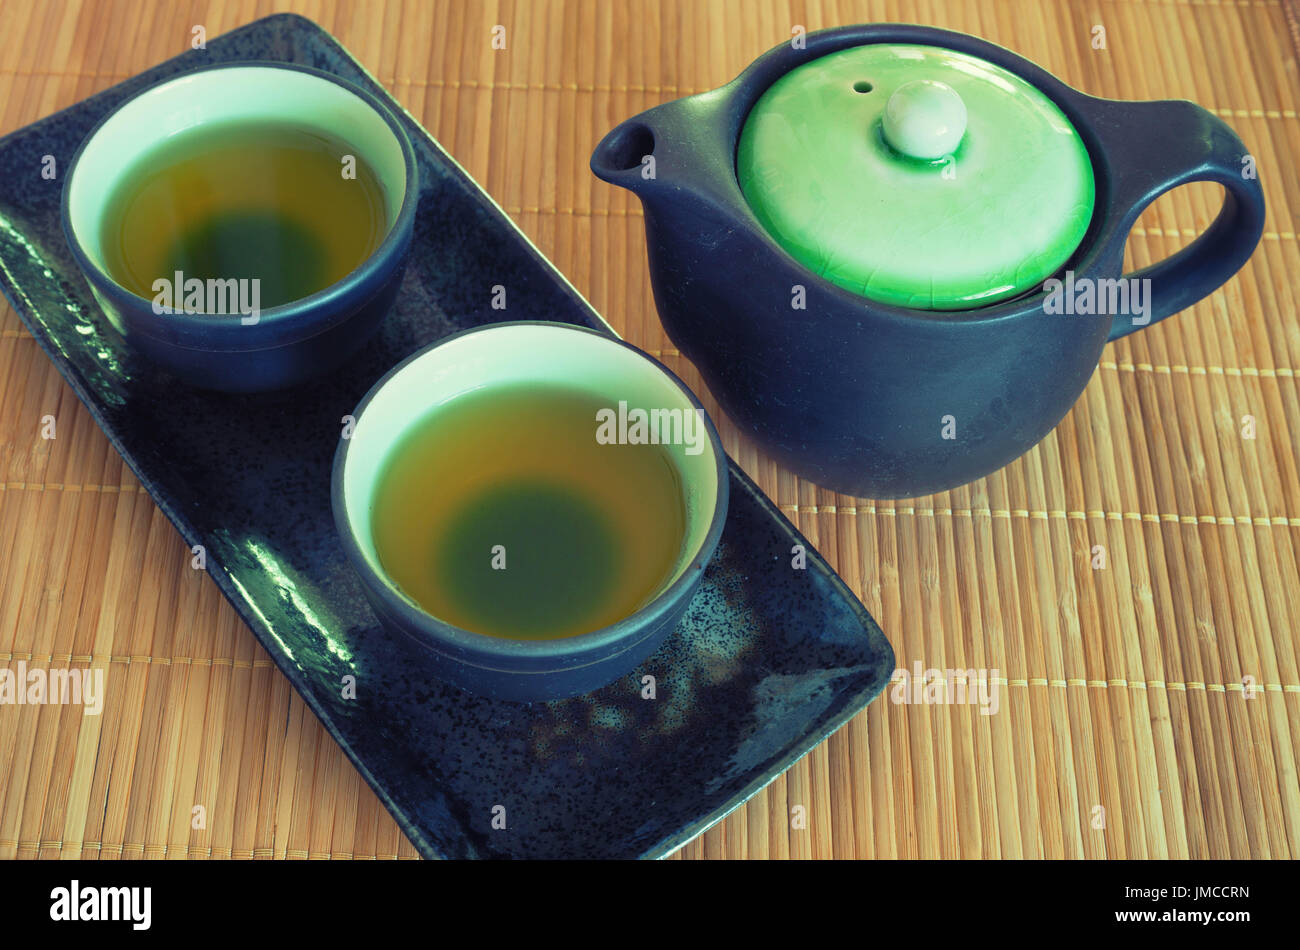 Brewed and healthy Japanese green tea served in traditional hohin and shiboridashi dishes - Stock Image